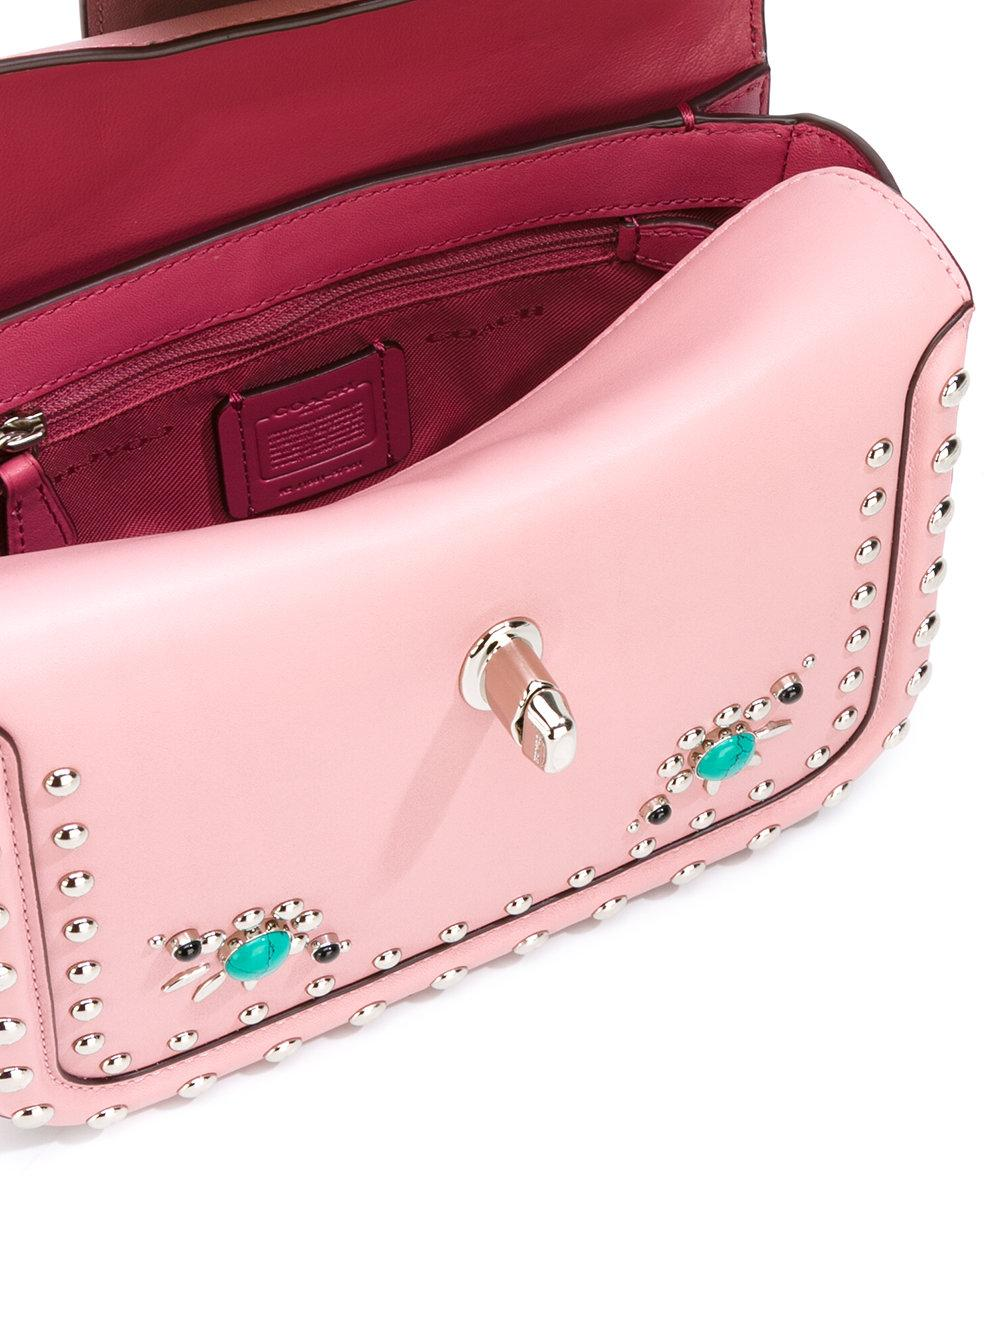 COACH Leather Studded Tote in Pink/Purple (Pink)